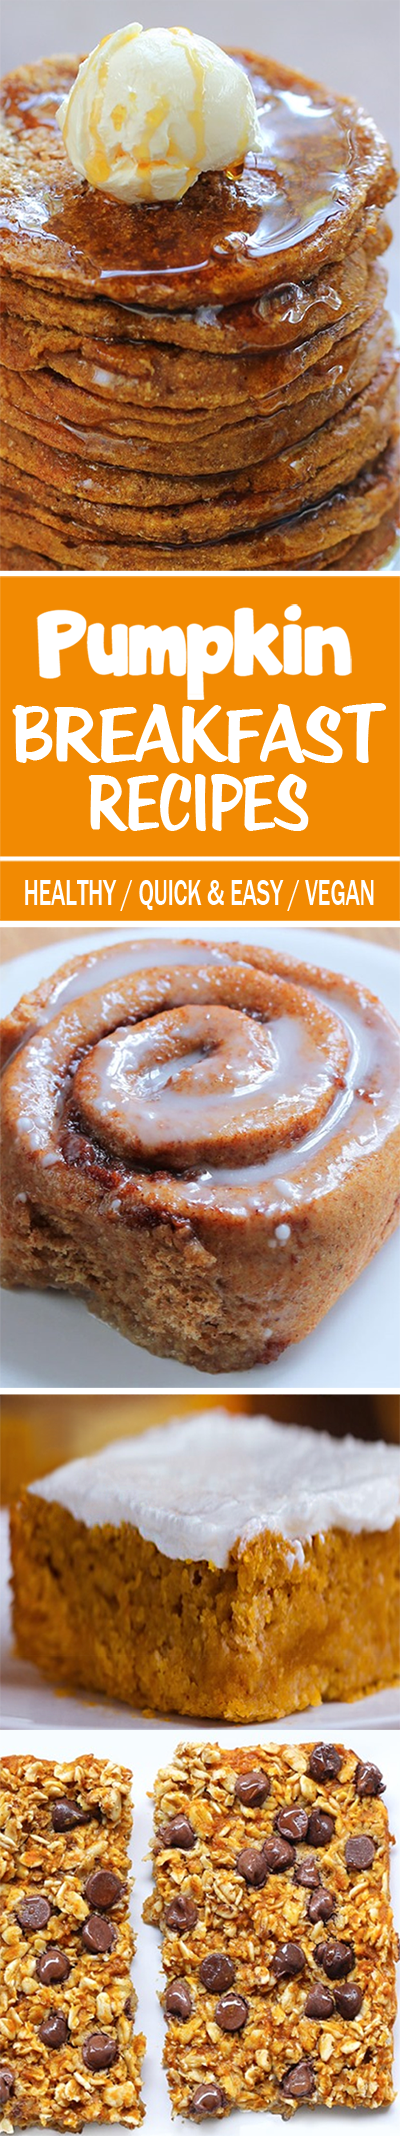 So many healthy pumpkin breakfast recipes, and all of them are vegan!